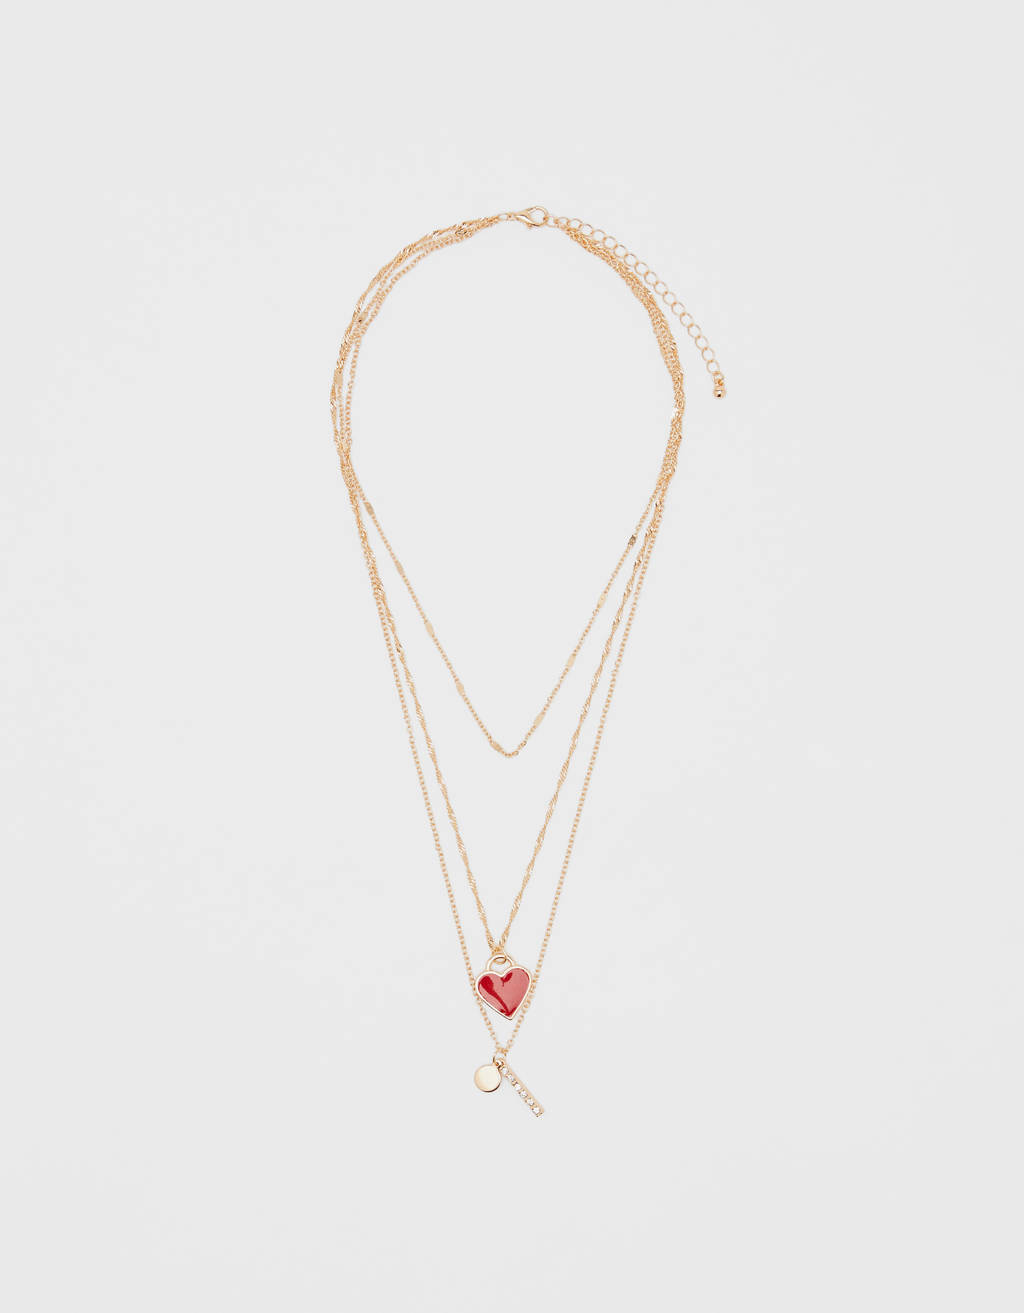 Necklace with heart charms